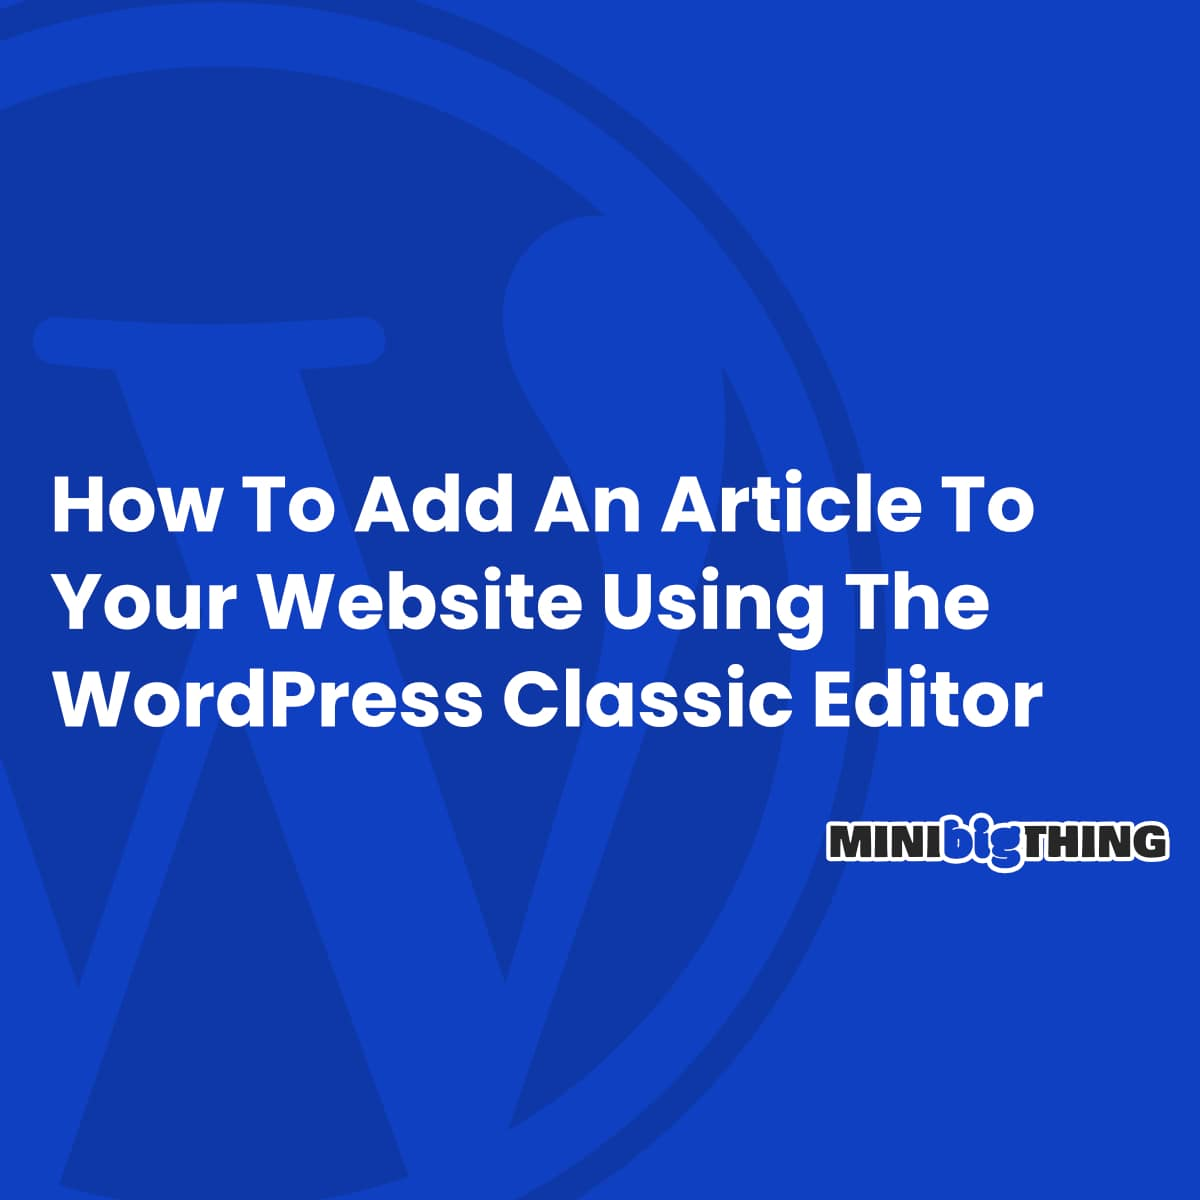 How To Add An Article To Your Website Using The Wordpress Classic Editor